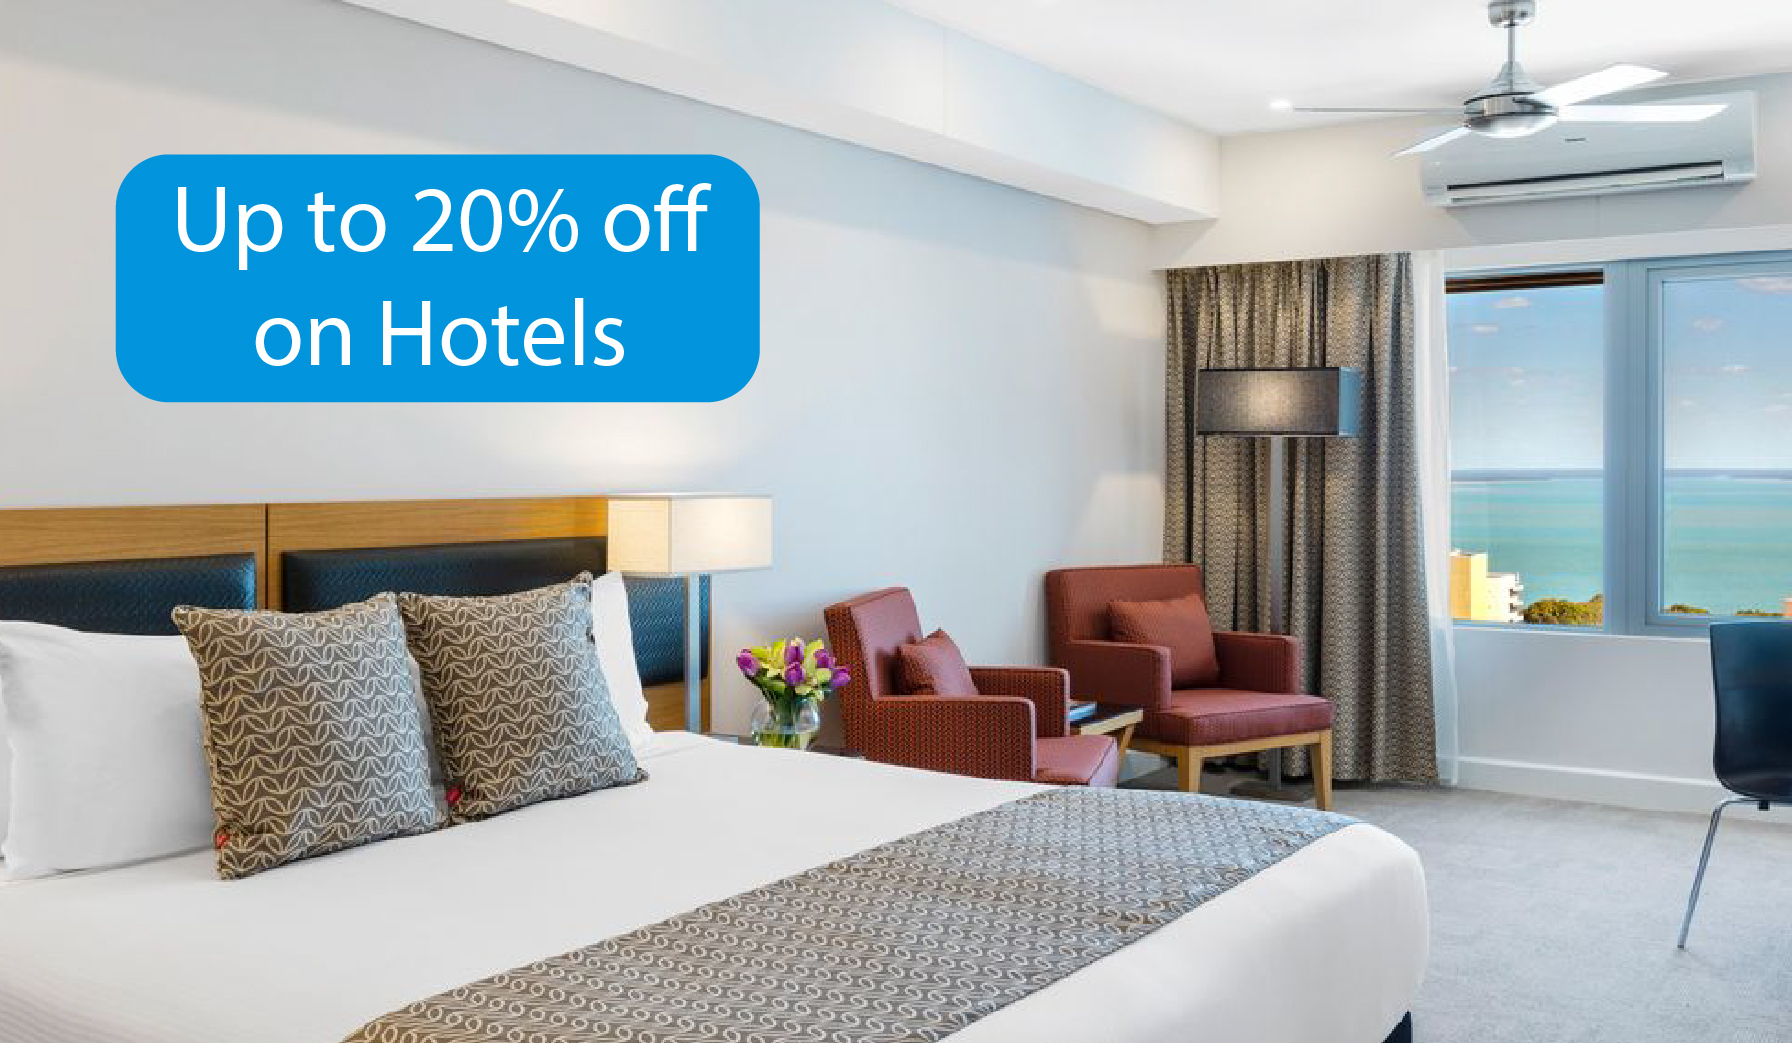 Hotels up to 20% off